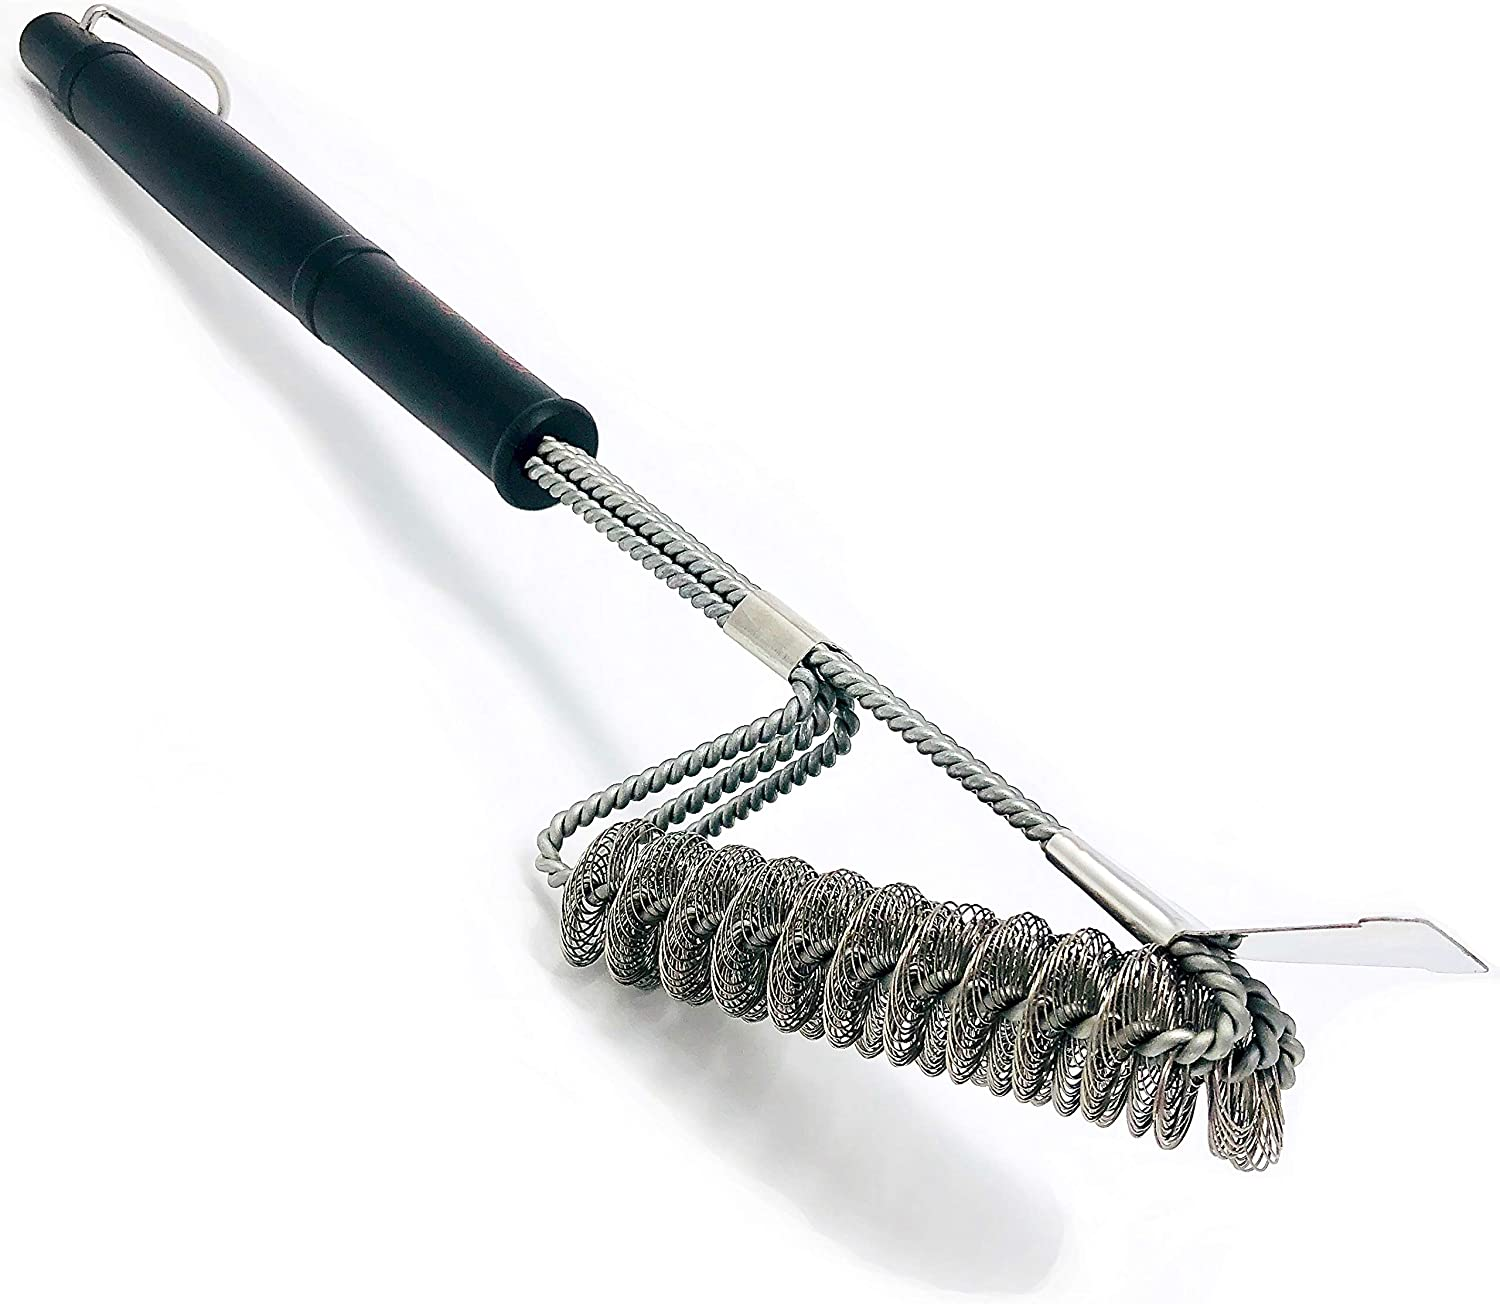 BBQ Cleaning Brush Grill Wire Kitchen Cooking Stainless Steel Barbecue Scraper